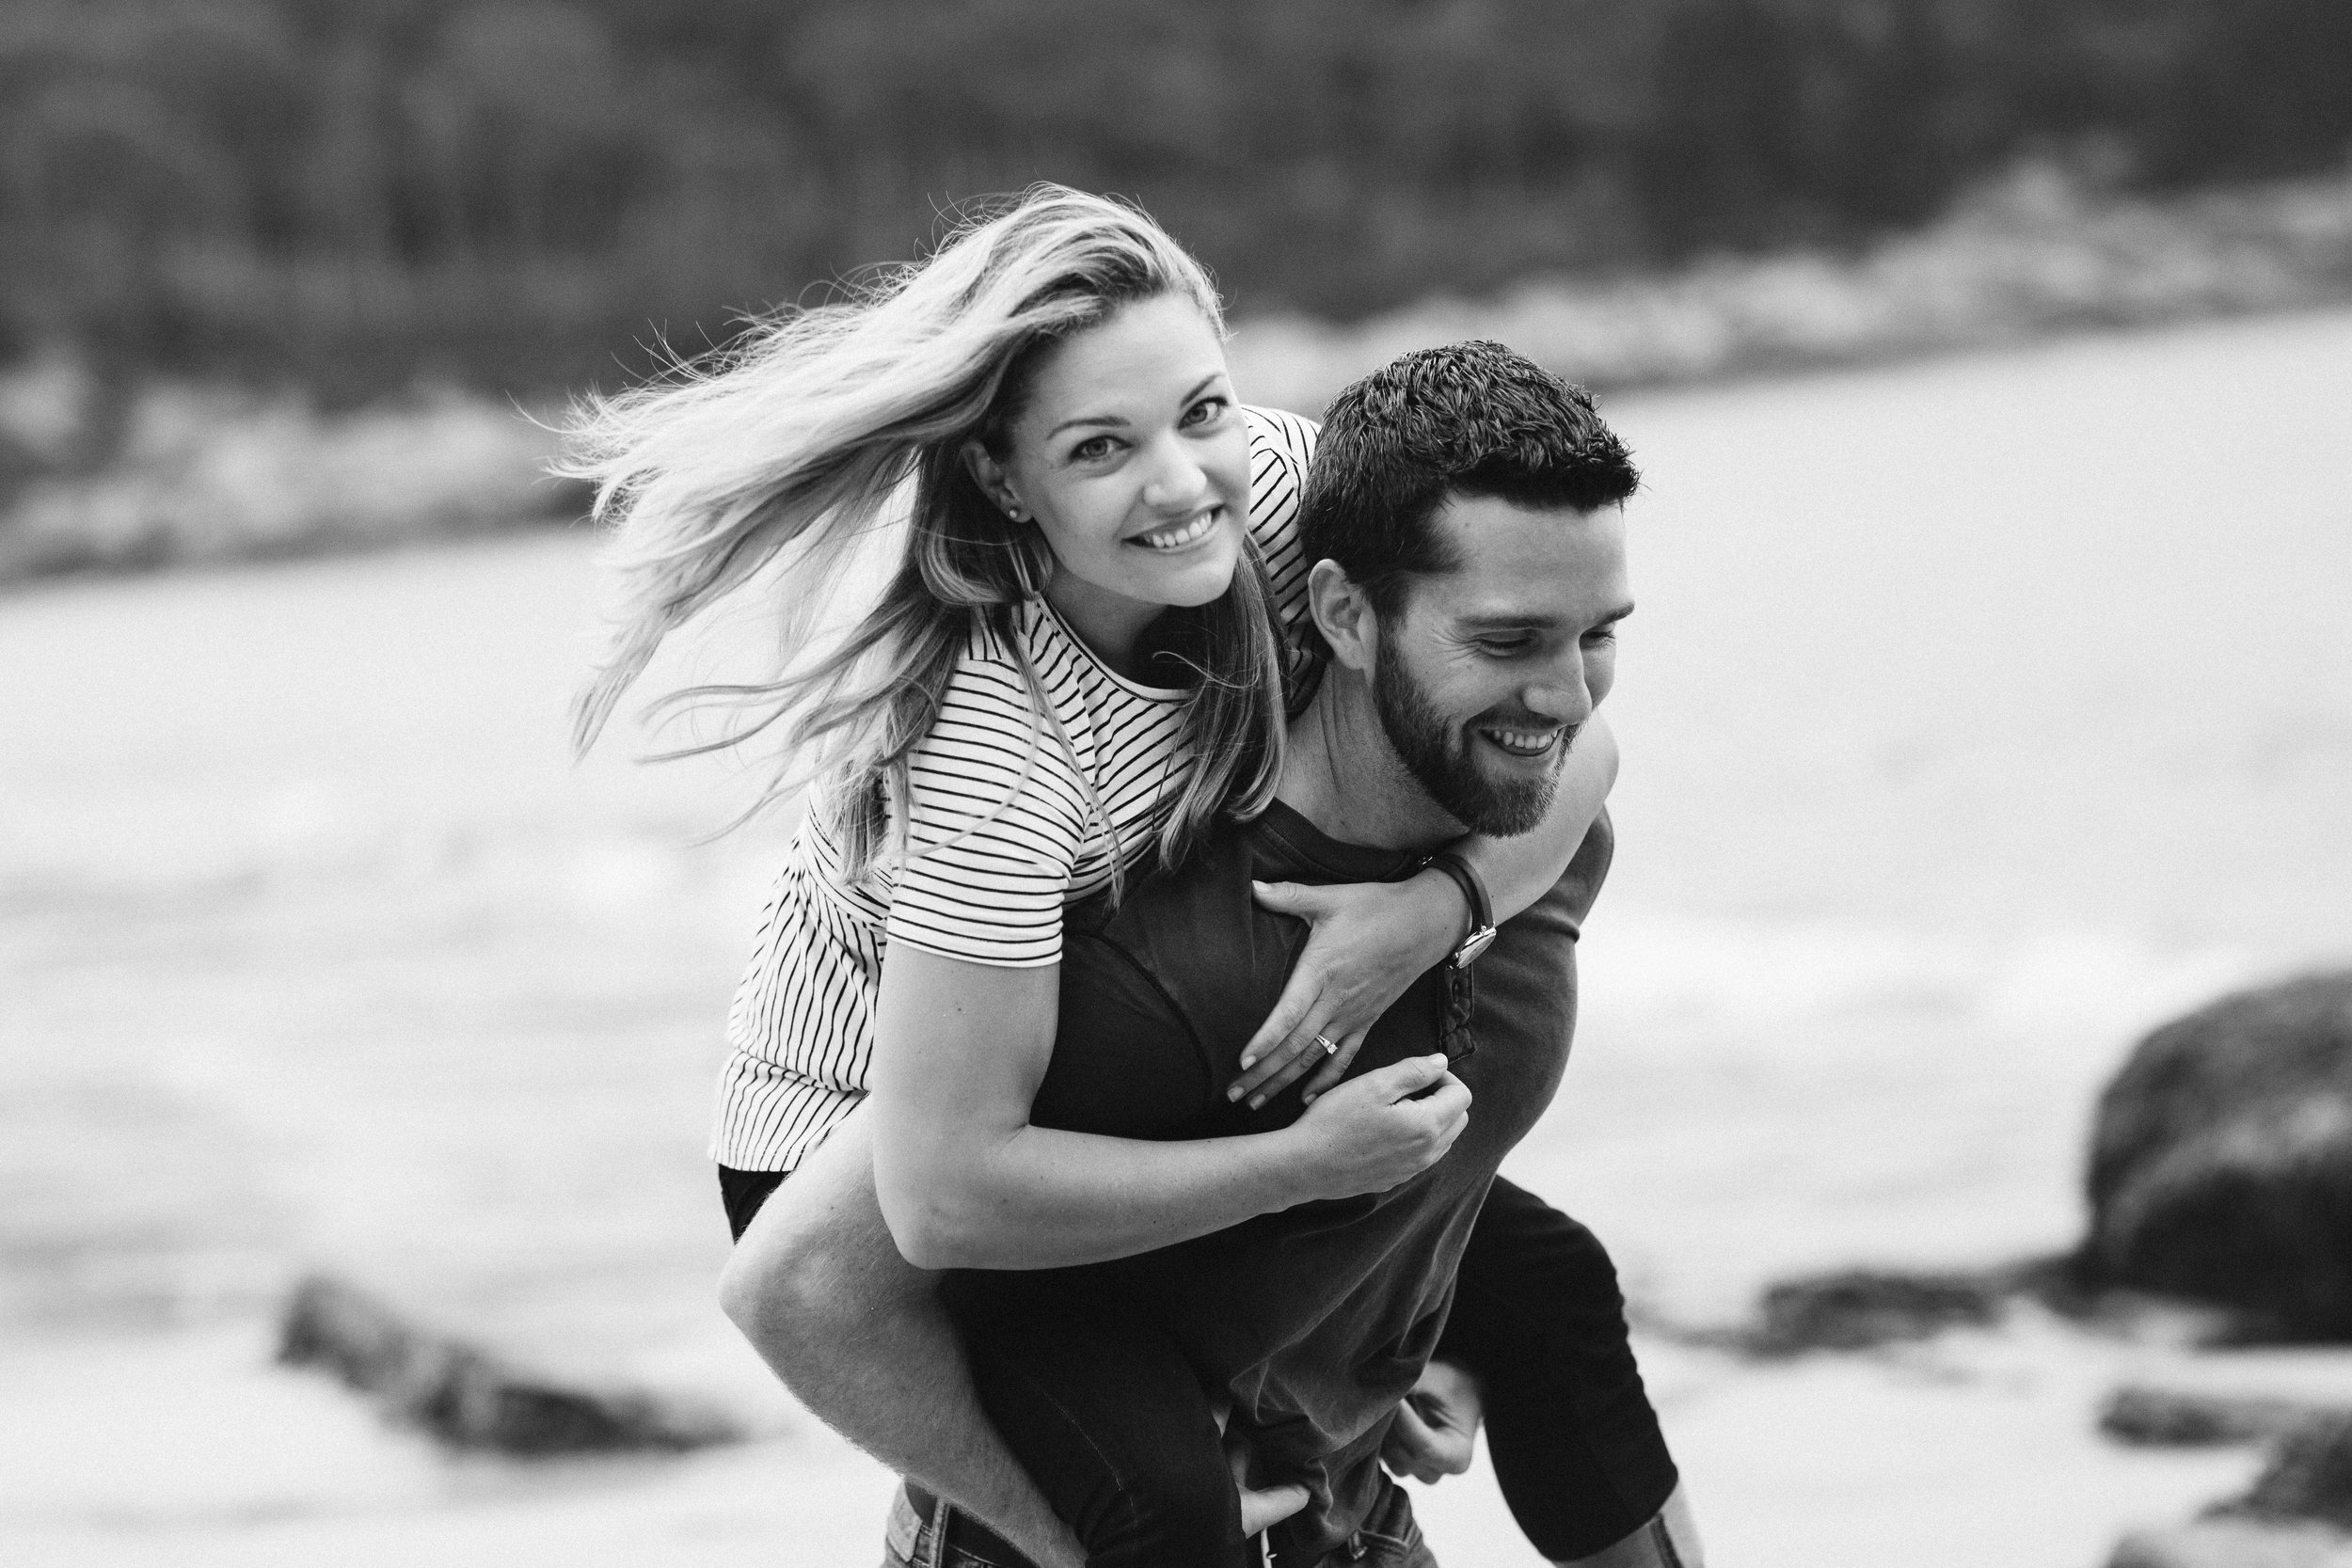 nicole-daacke-photography-acadia-national-park-adventurous-engagement-session-photos-otter-cliffs-forests-coastline-sand-beach-adventure-session-bar-harbor-mt-desert-island-elopement-fall-bass-harbor-lighthouse-wedding-maine-landscape-photographer-16.jpg